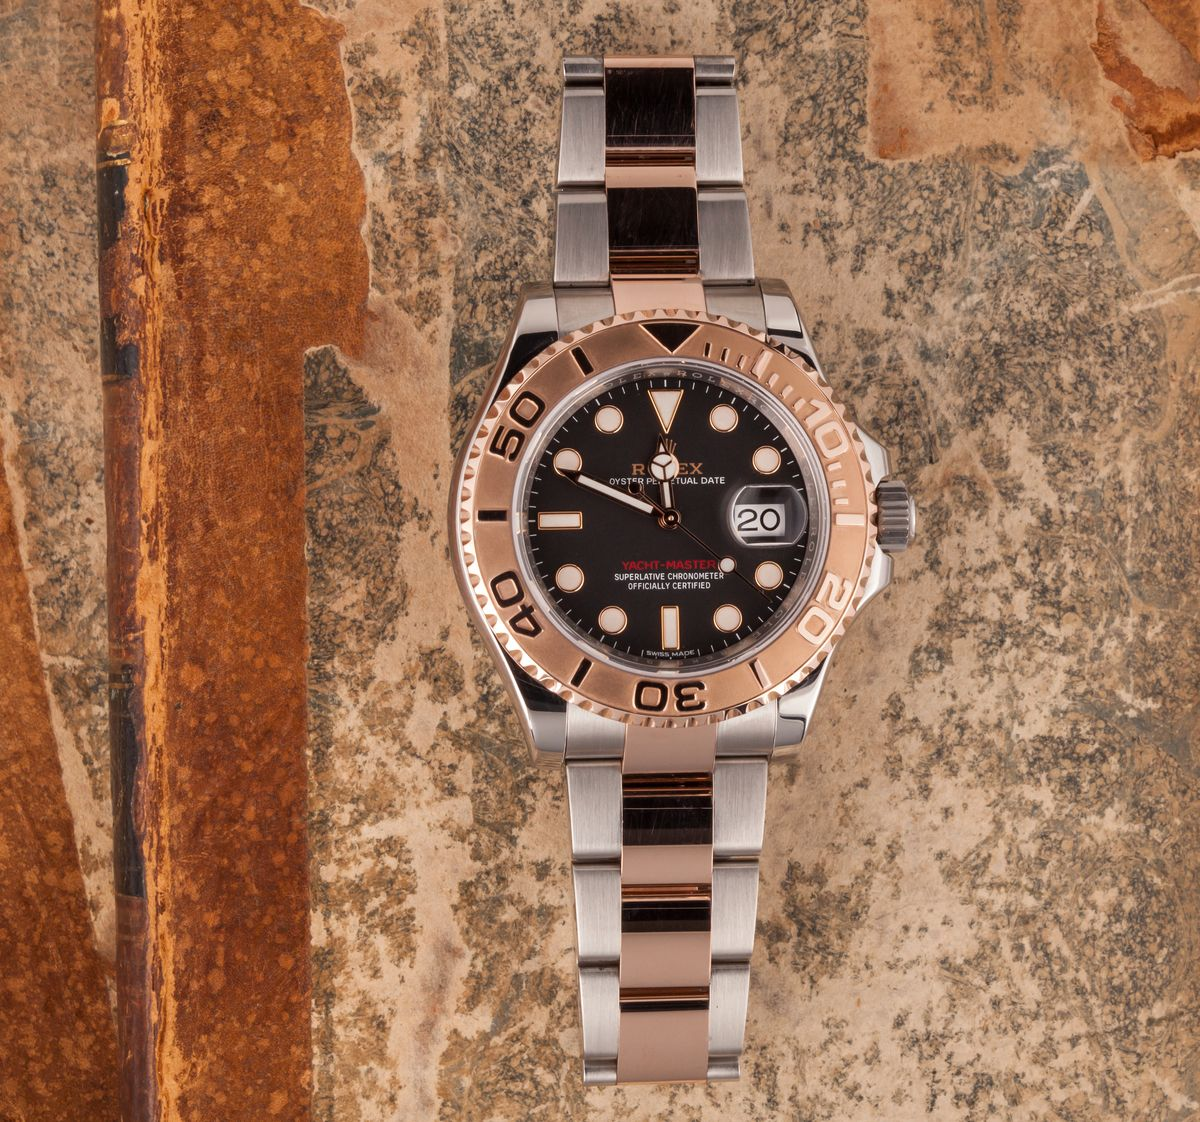 Rolex Yacht-Master 116621 Everose Two-Tone Review